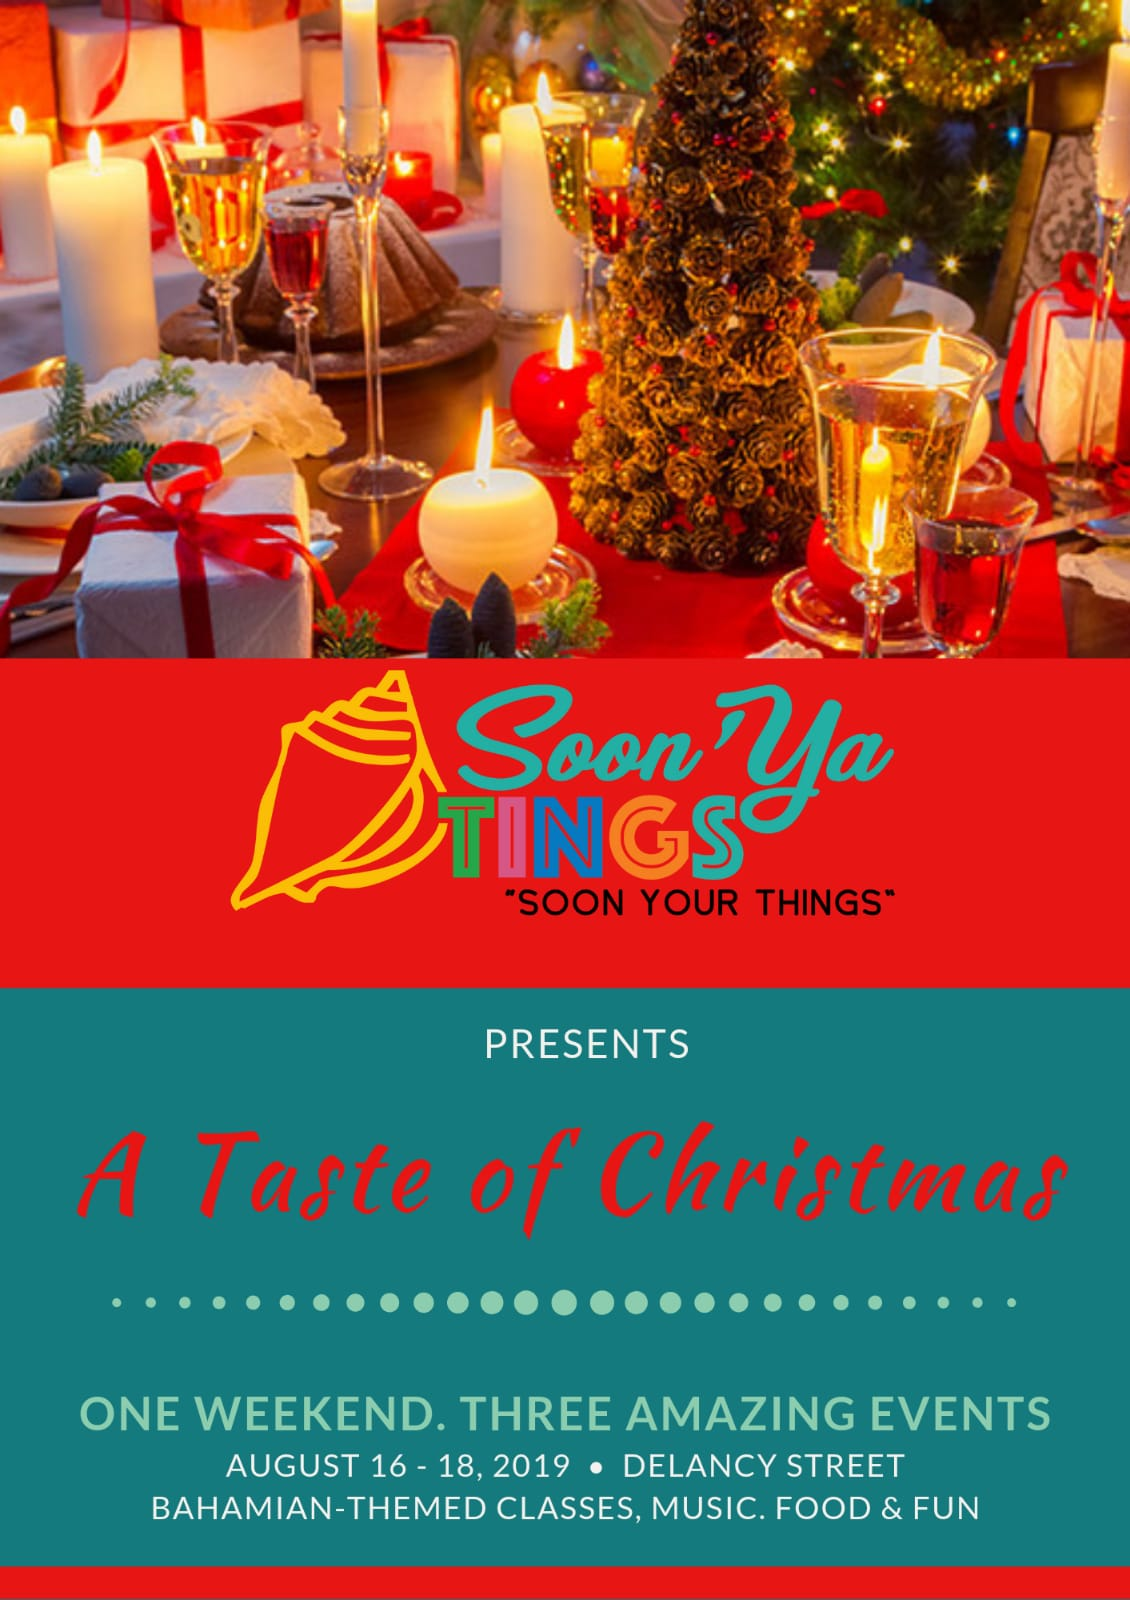 Soon Ya Tings - A Taste of Christmas